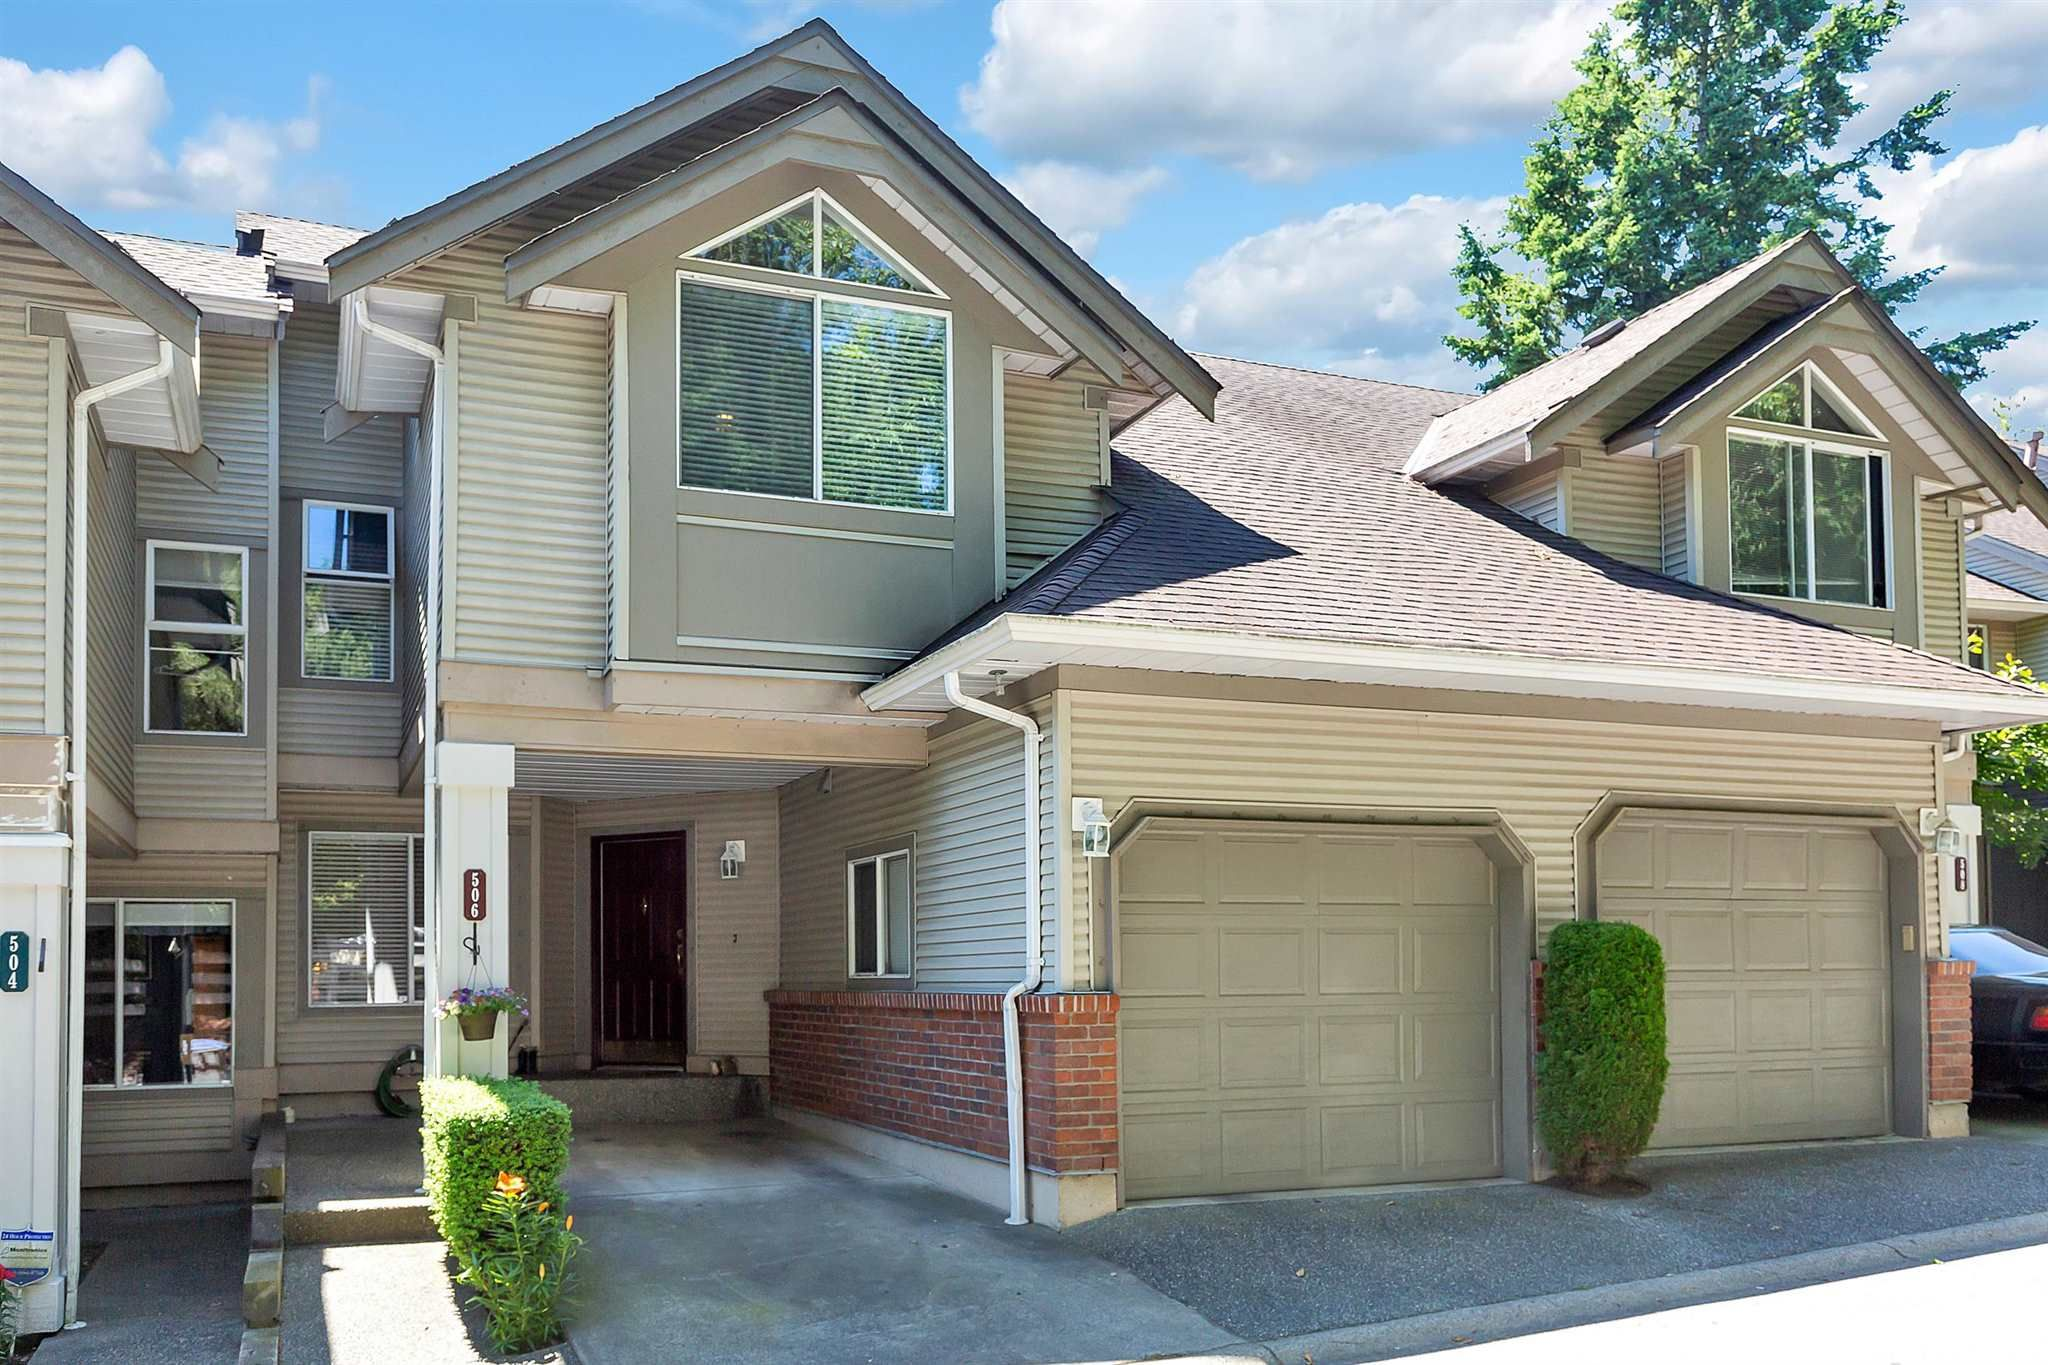 """Main Photo: 506 13900 HYLAND Road in Surrey: East Newton Townhouse for sale in """"HYLAND GROVE"""" : MLS®# R2595729"""